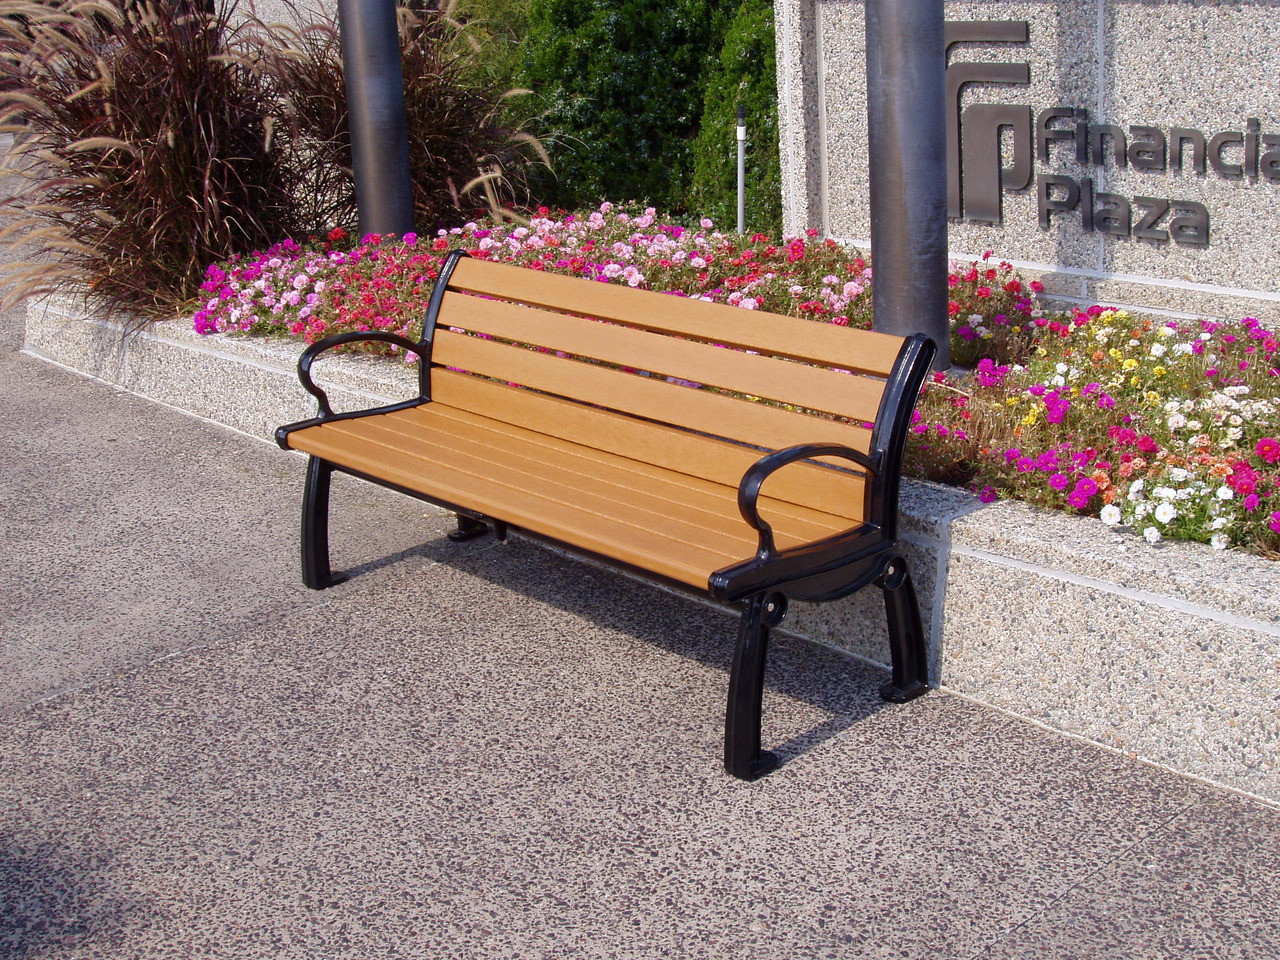 Heritage Recycled Plastic Outdoor and Park Bench - 5'